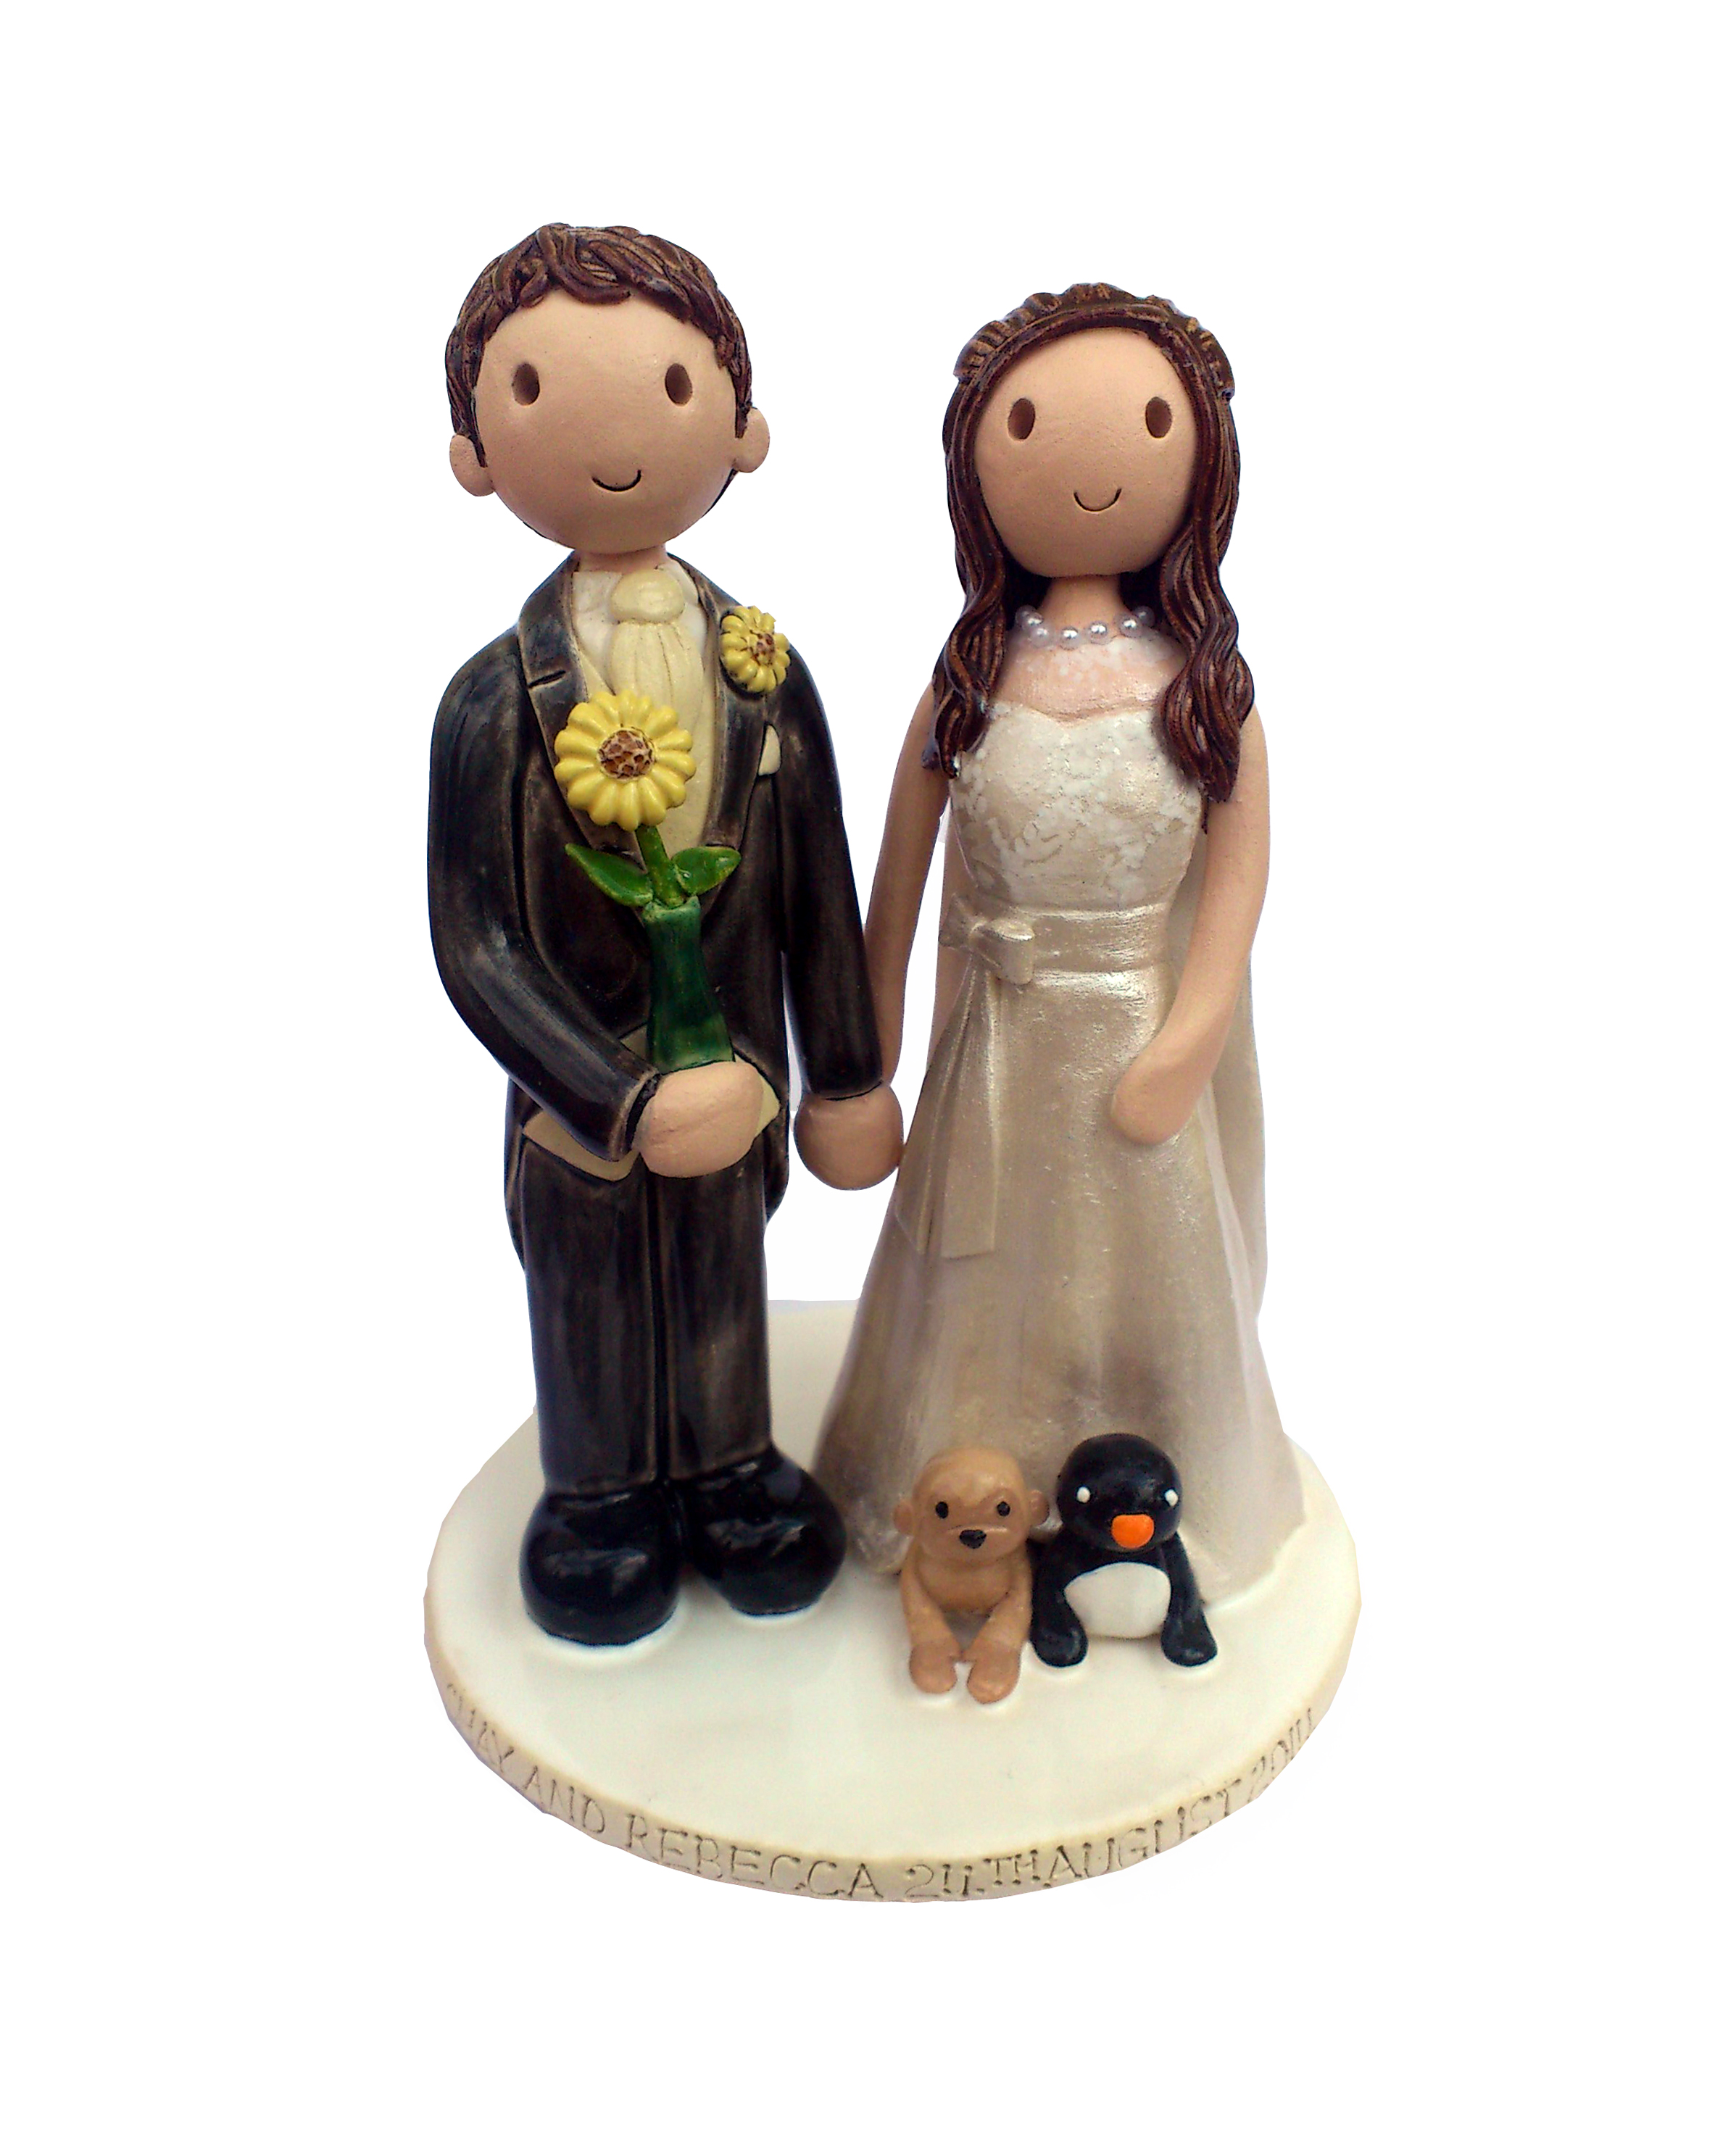 Cake Decorations Uk : Wedding Cake Toppers Gallery. Personalised Cake Topper ...